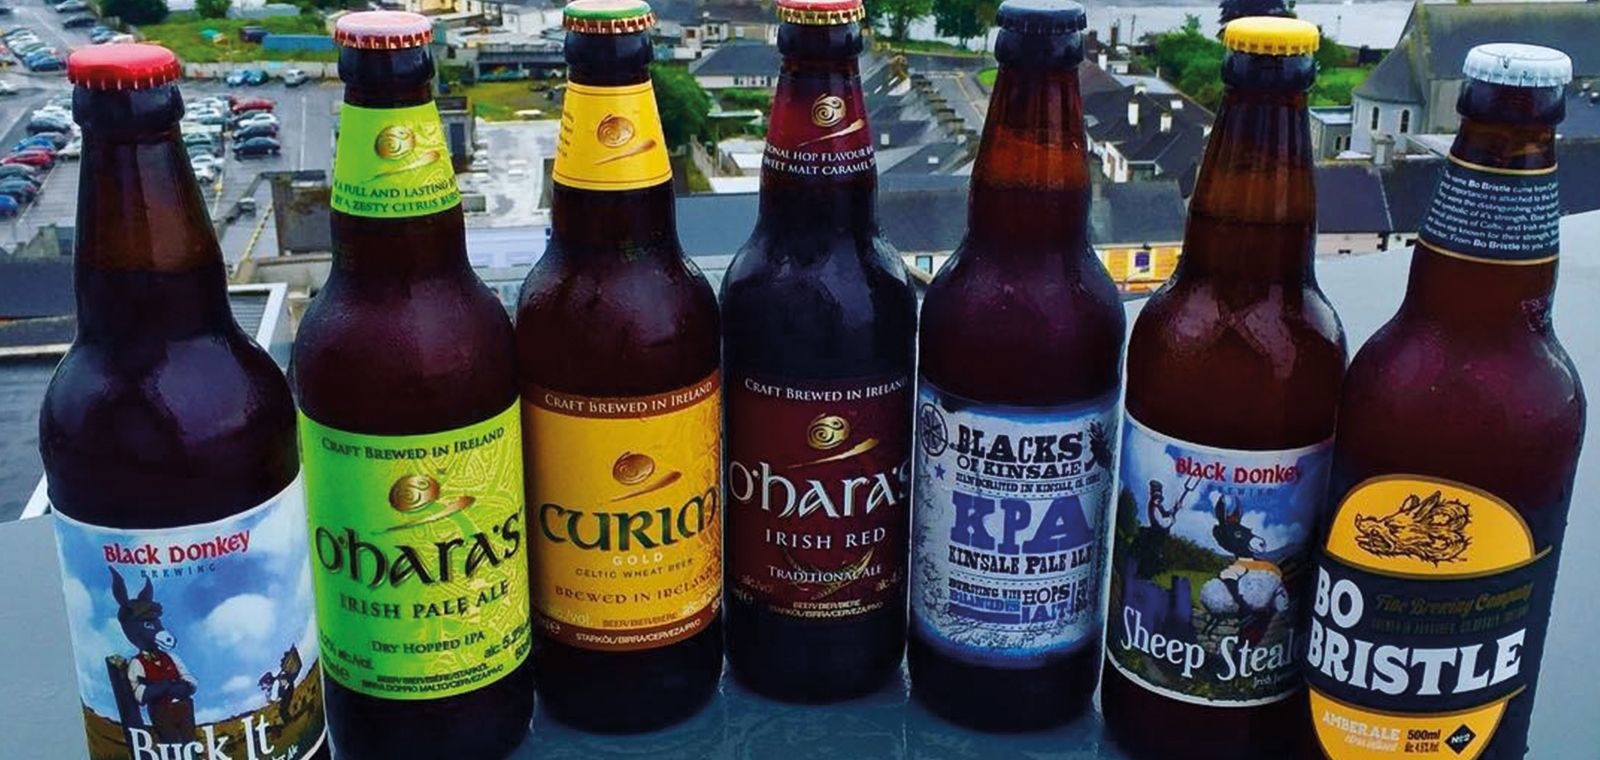 Craft Beer in Sheraton Athlone Hotel